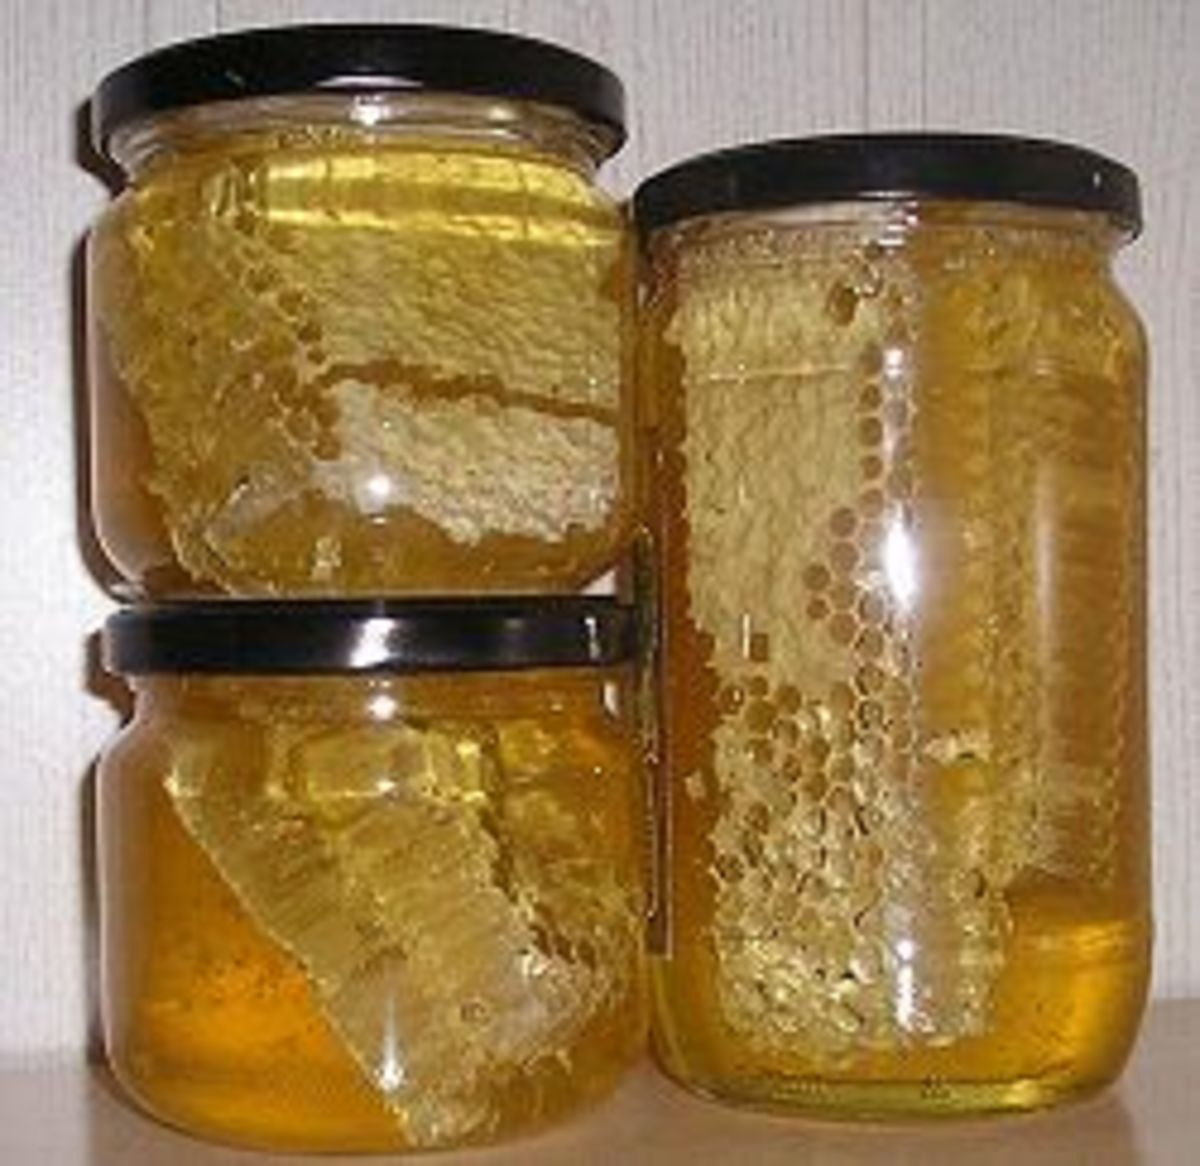 Honey face masks | Skin Benefits of Honey